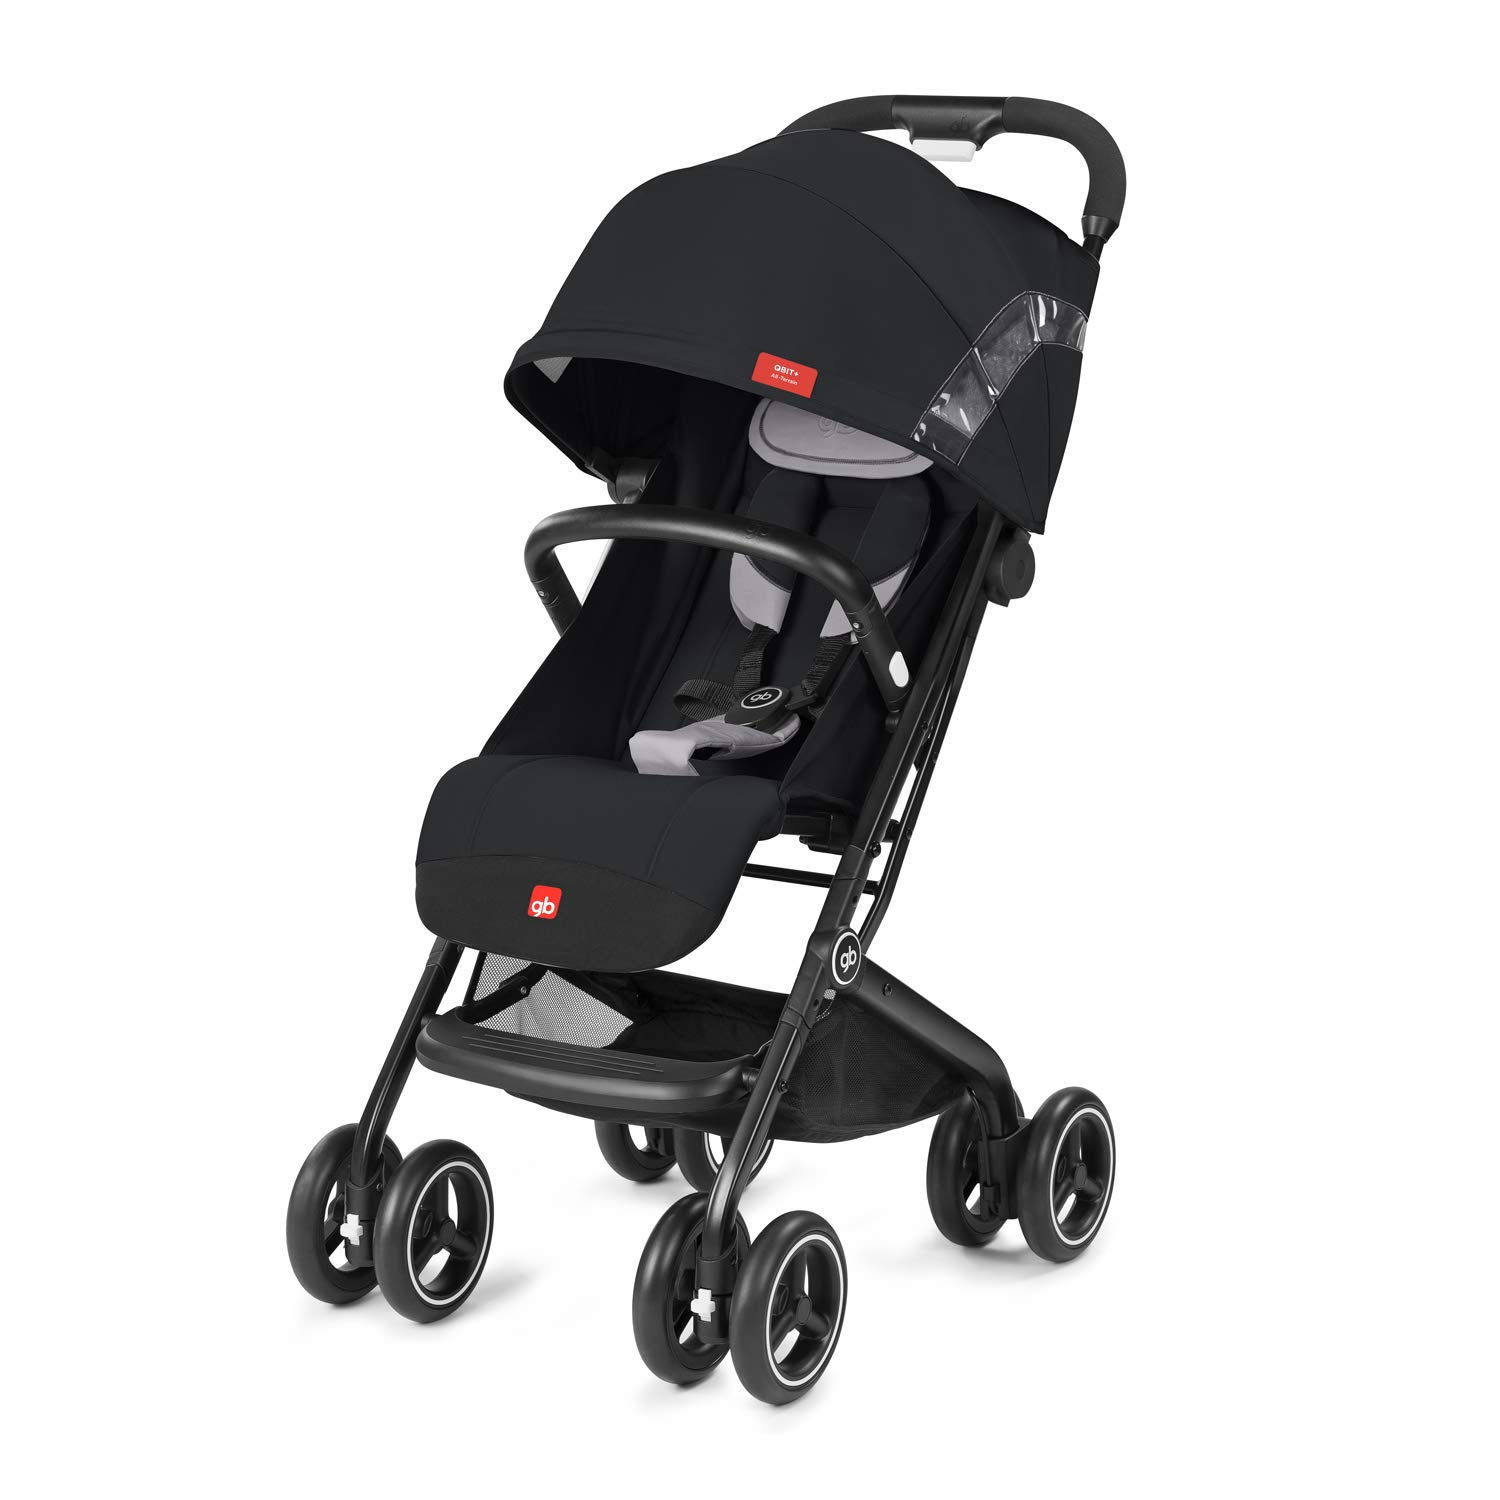 from Birth up to 17 kg All-Terrain with Bumper BarVelvet Black GoodBaby QBIT Plus gb 2019 Buggy QBIT Approx. 4 Years